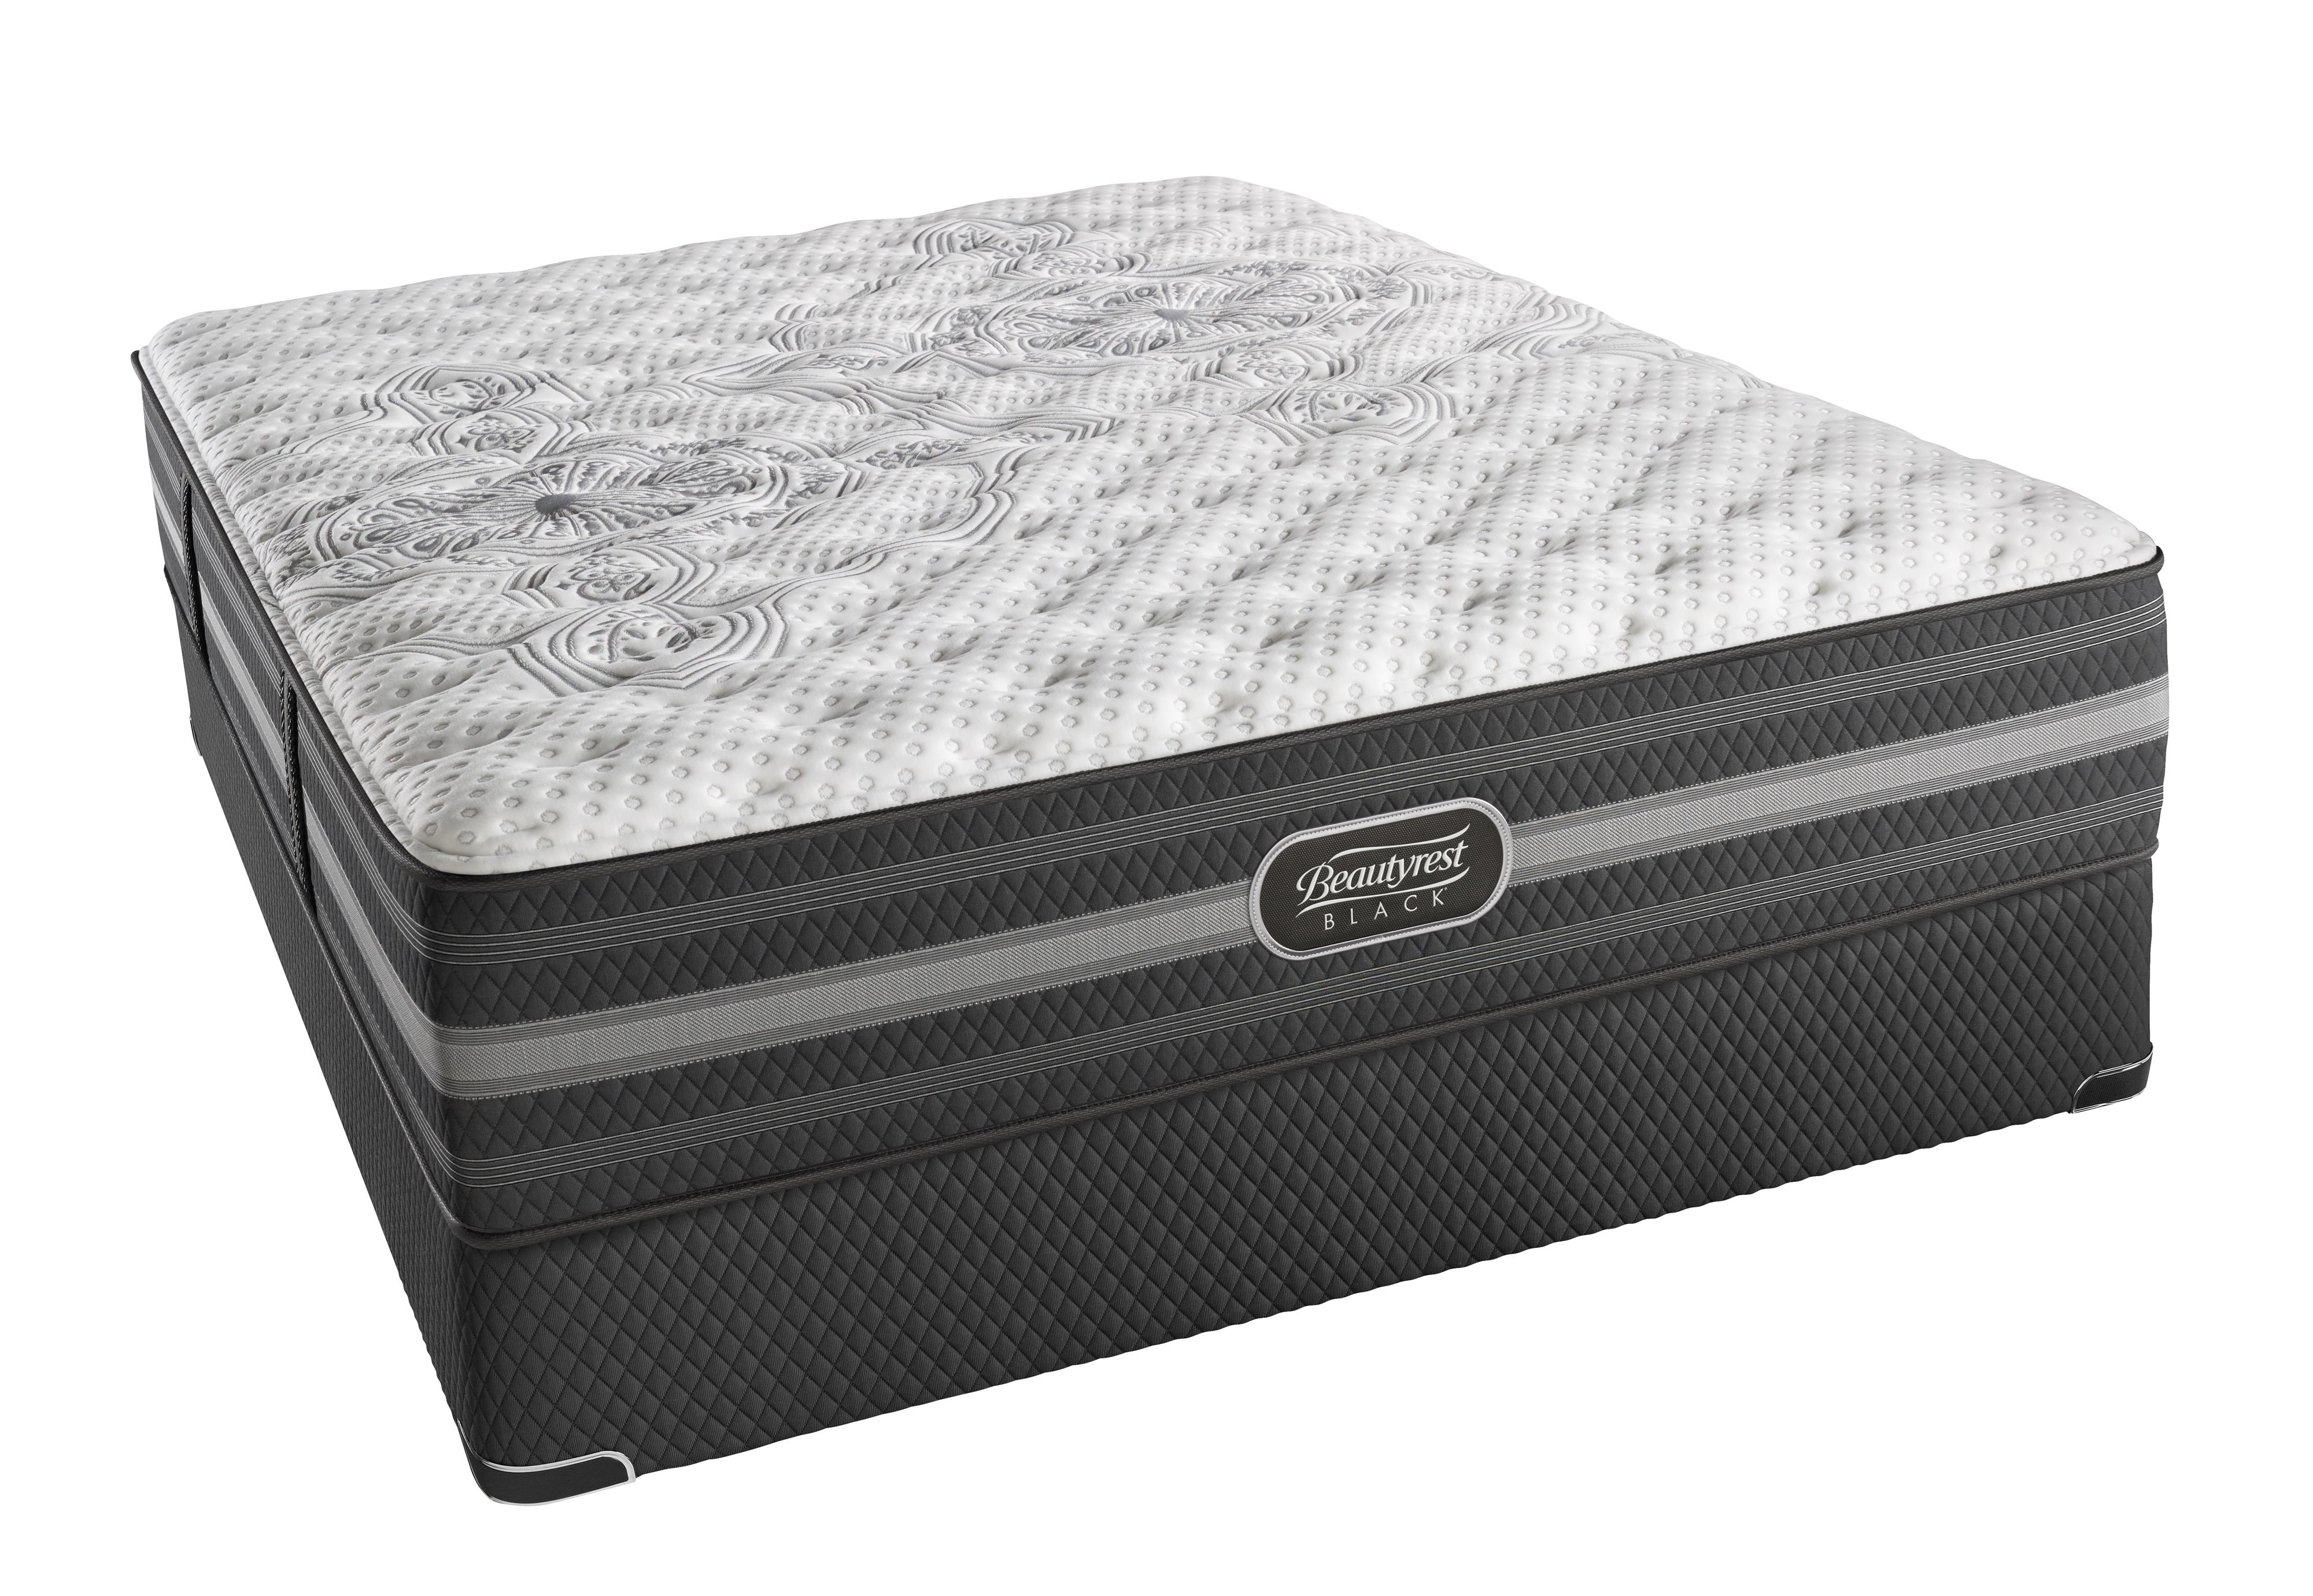 Beautyrest BR Black Calista Full Extra Firm Mattress Set - Item Number: BRBXF-F+50462F